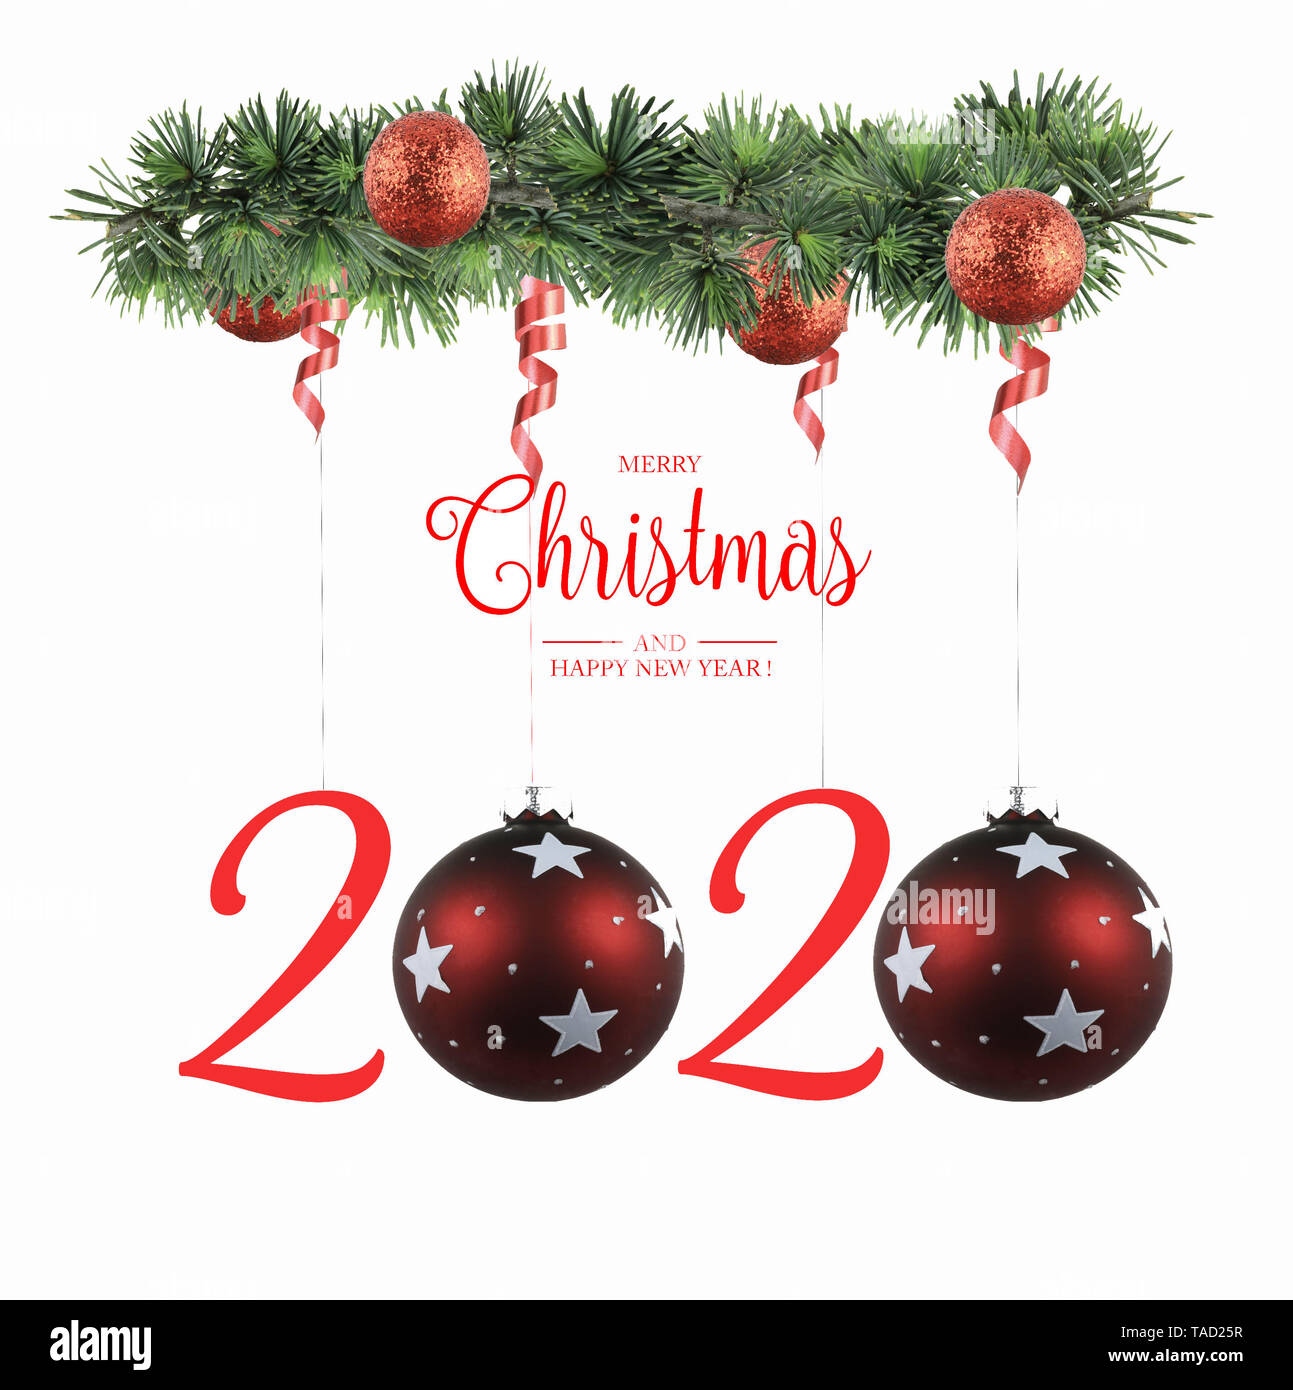 Christmas Cards 2020 Happy New Year 2020 Greeting Cards Stock Photo   Alamy